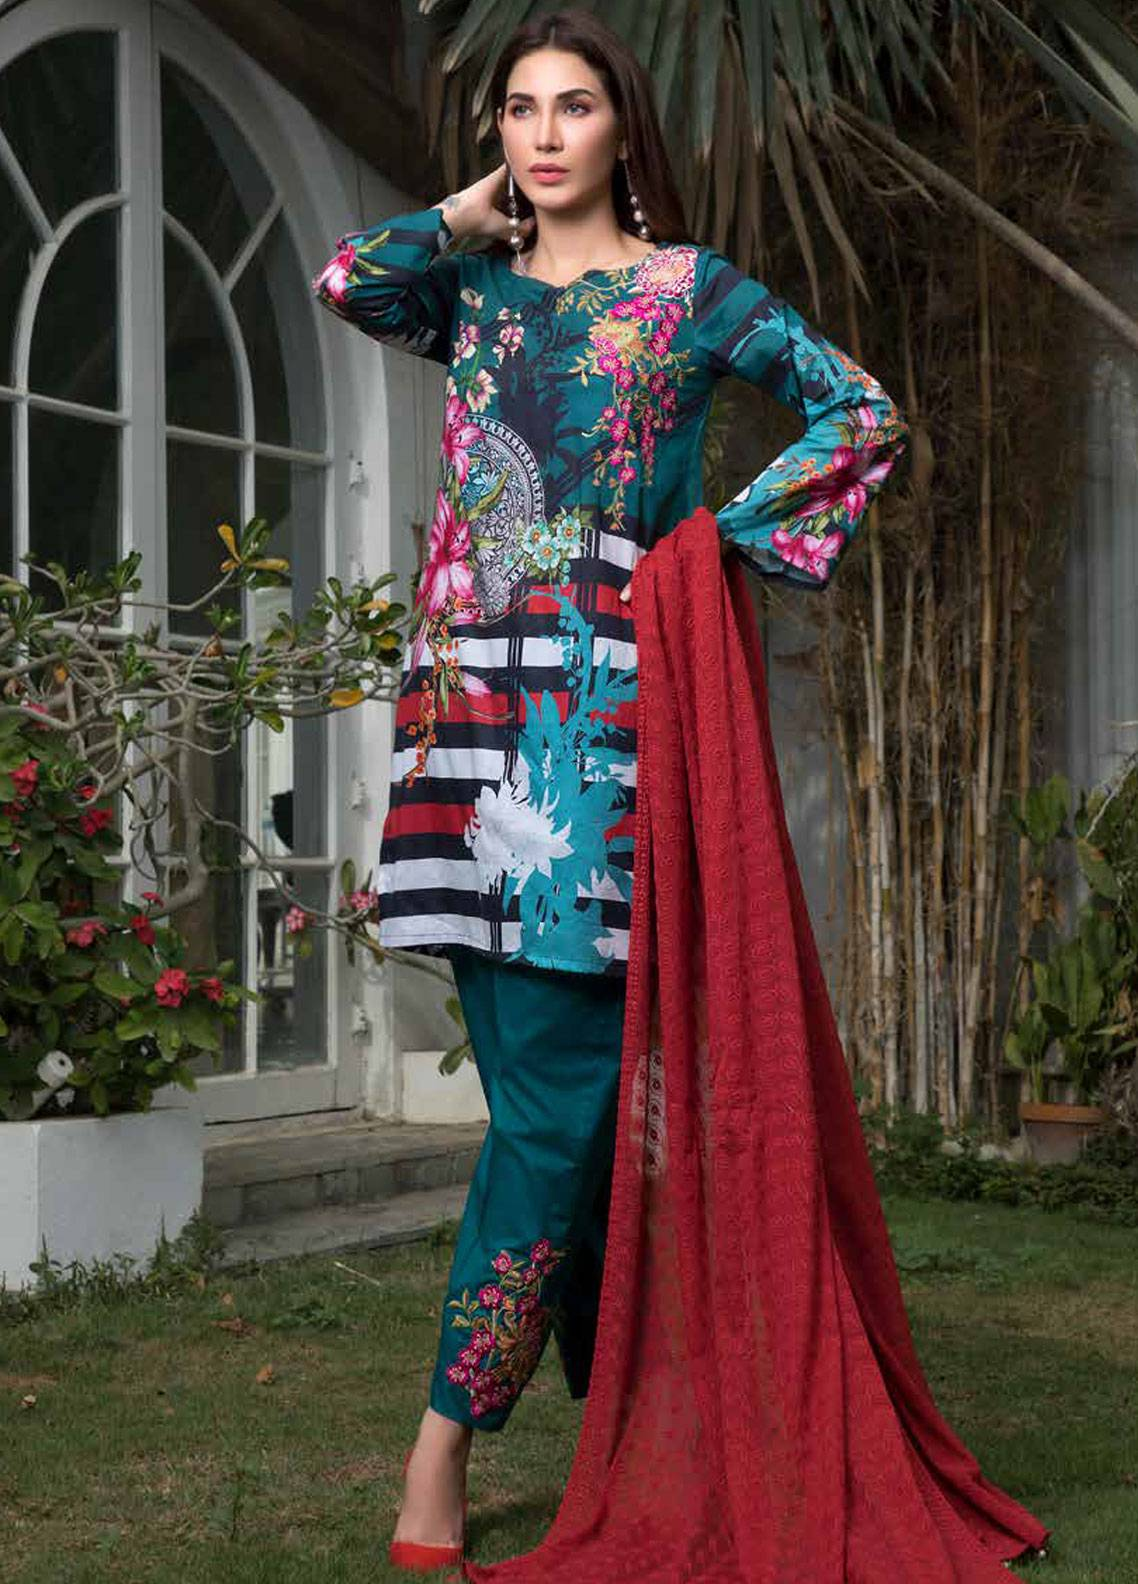 Maya by Noor Textiles Embroidered Lawn Unstitched 3 Piece Suit MYN19-L2 09 - Spring / Summer Collection